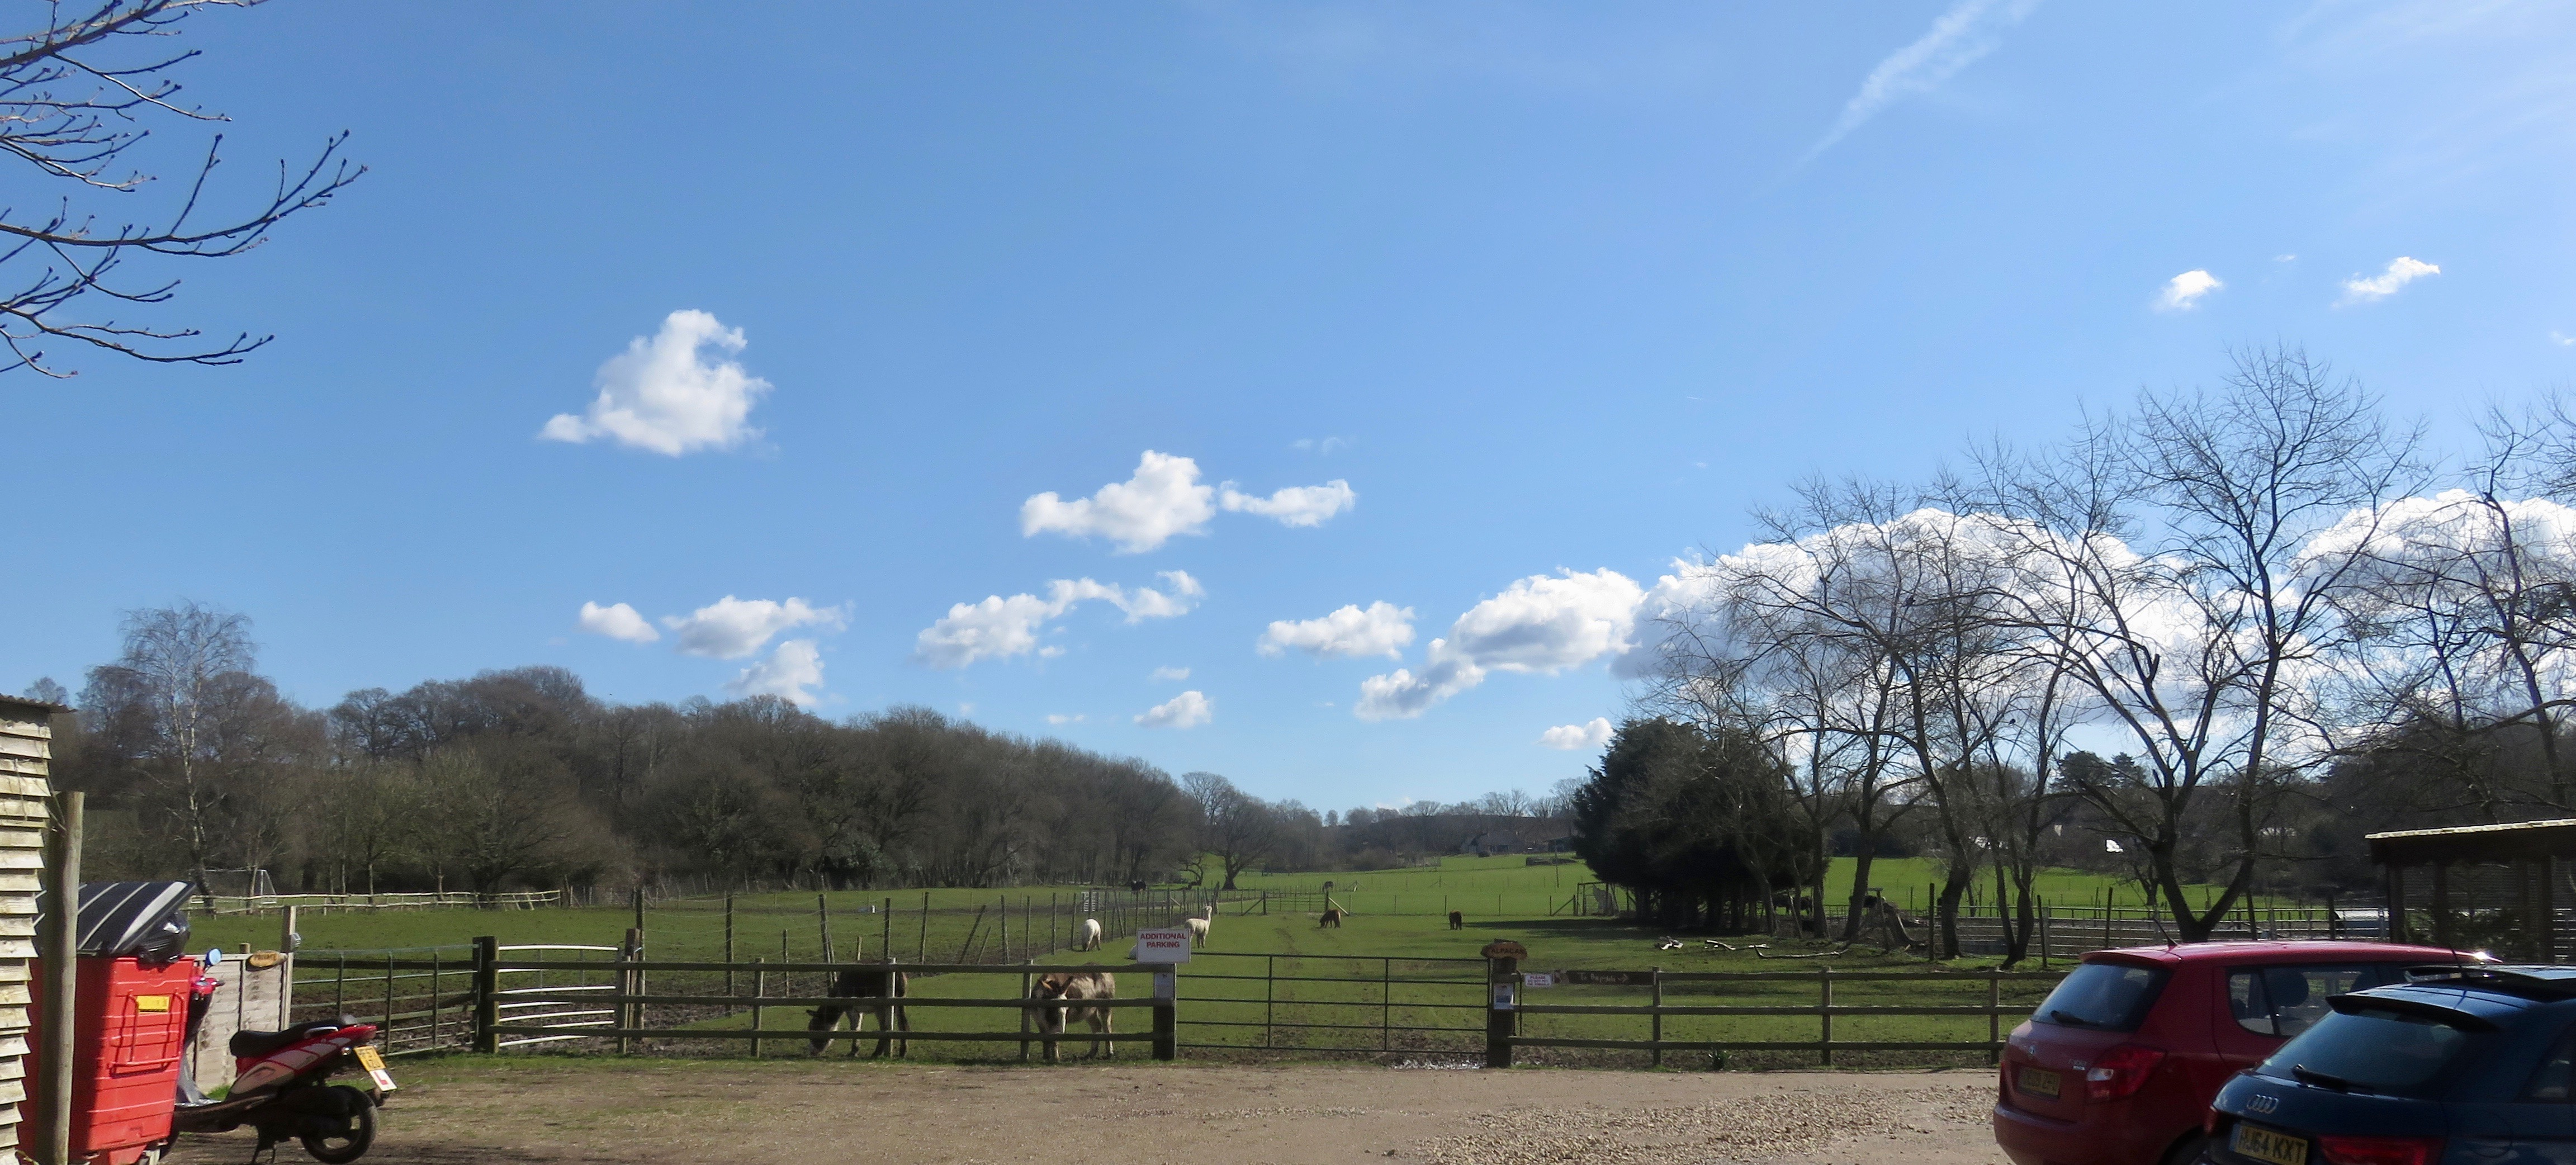 Paddocks with donkeys and alpacas